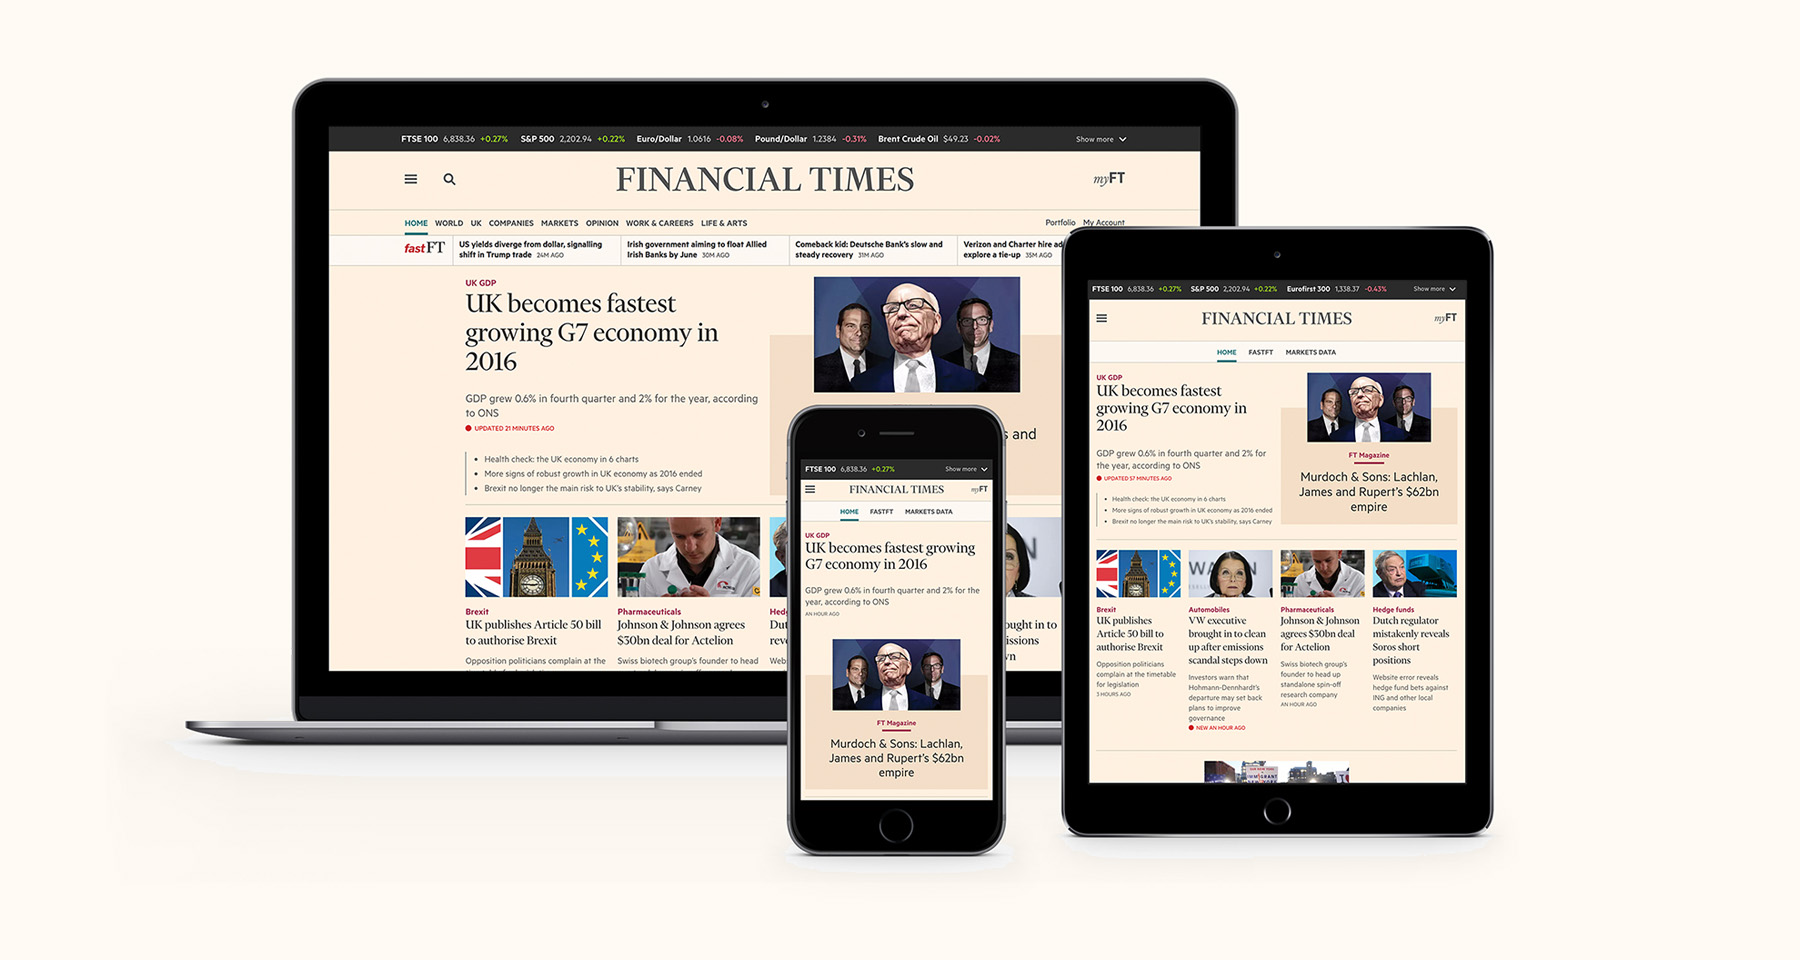 Financial Times increases engagement with personalisation, speed